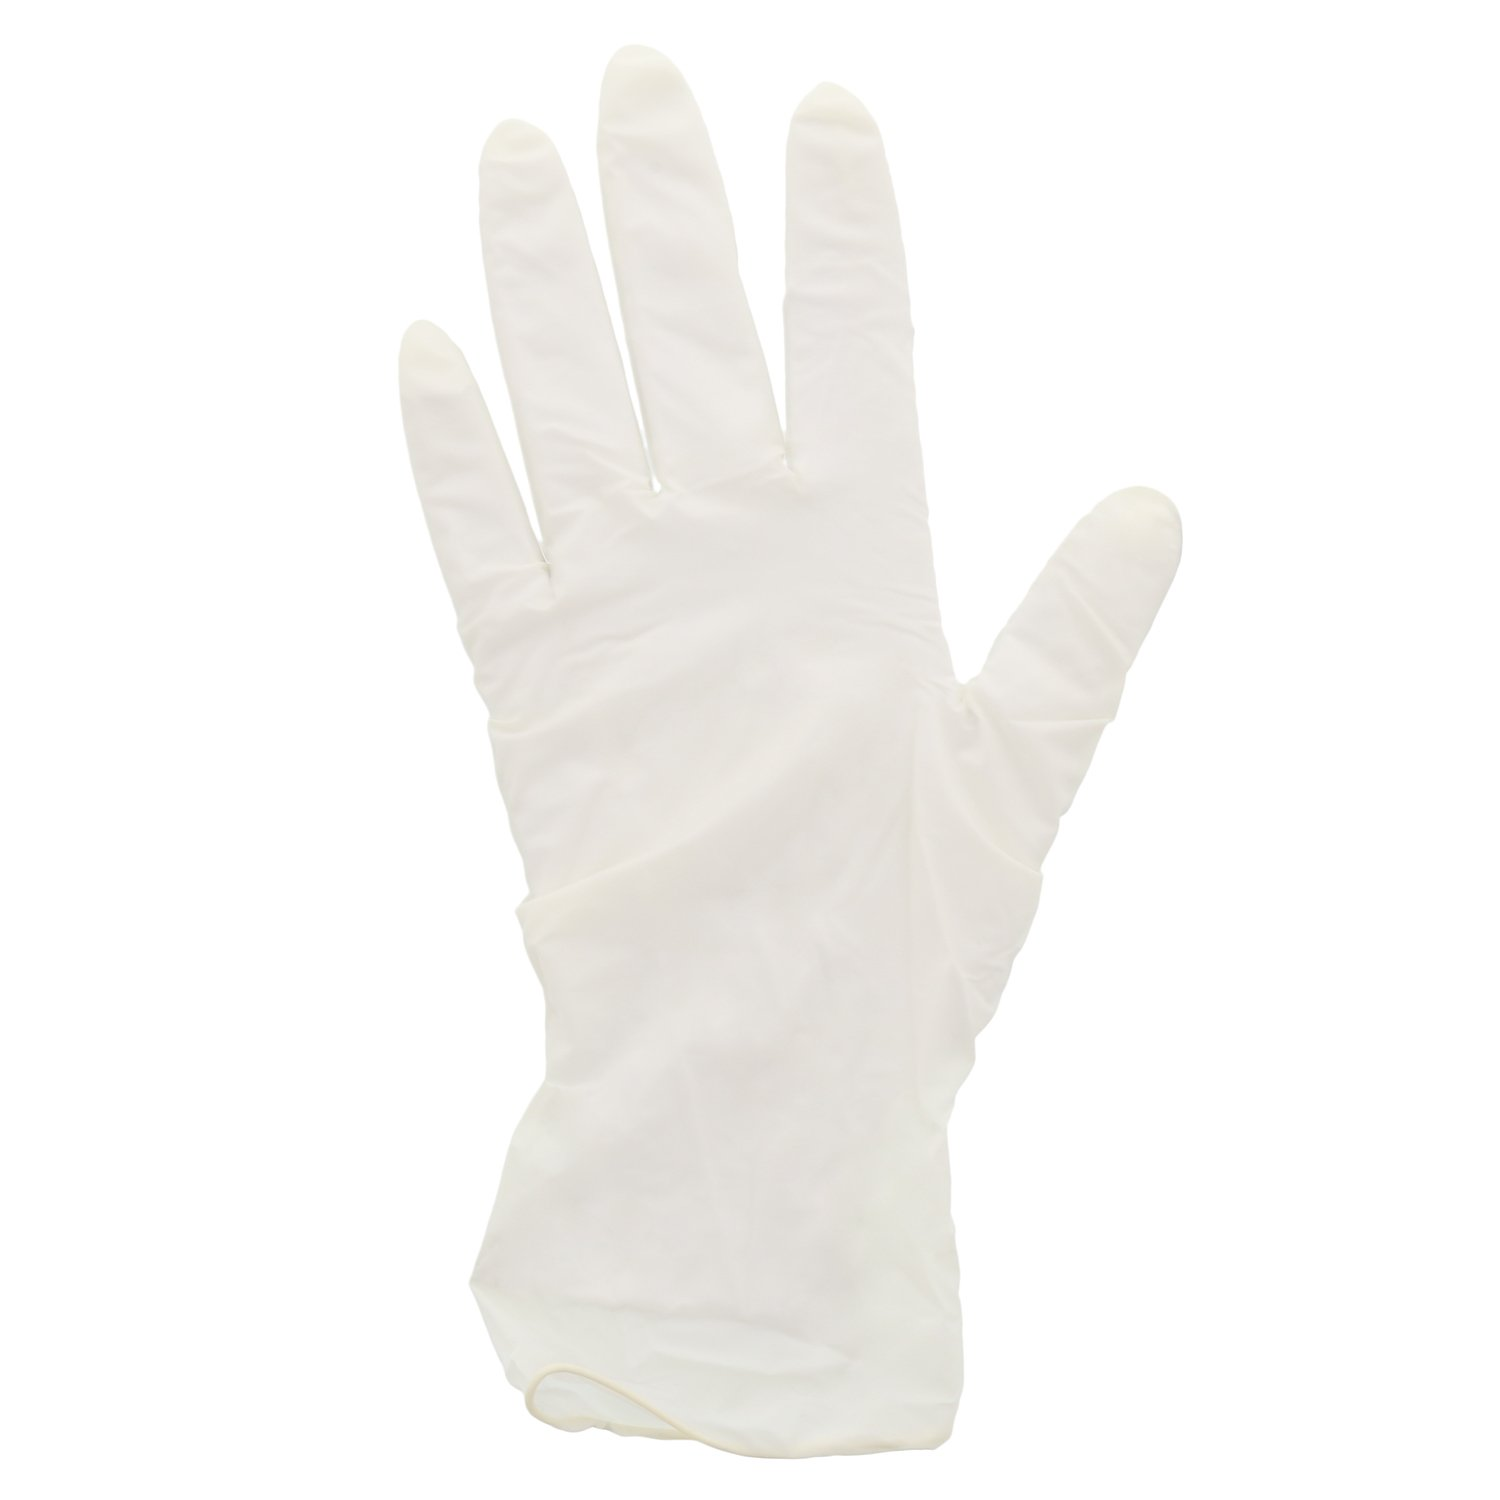 AmerCare Apollo Latex Gloves, Powder Free, Medium, Case of 1000